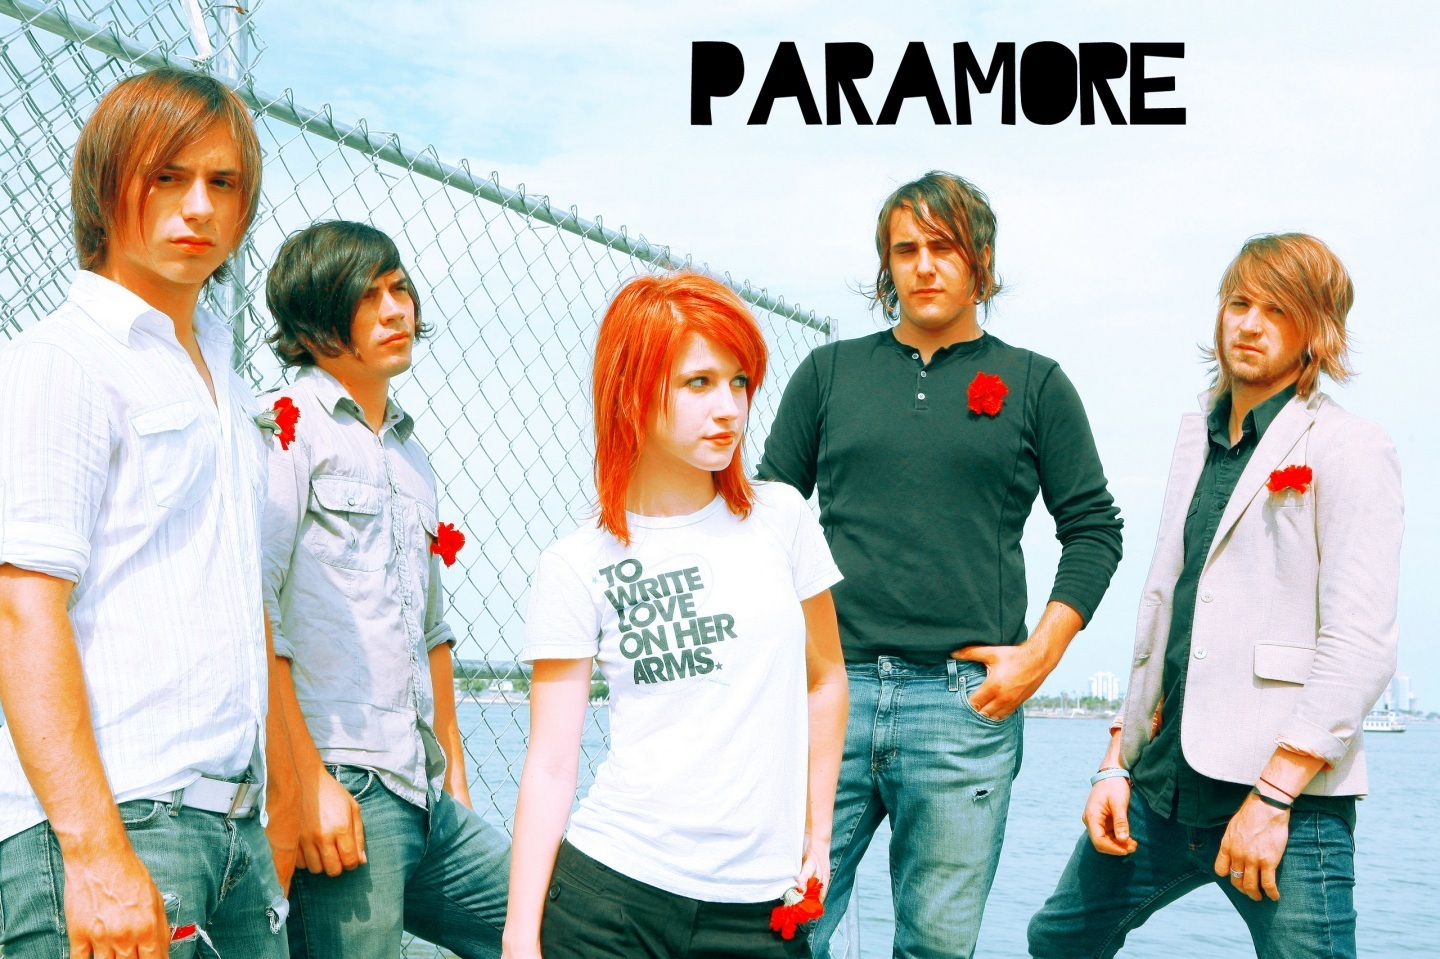 paramore-wallpapers-paramore-1306874180.jpg